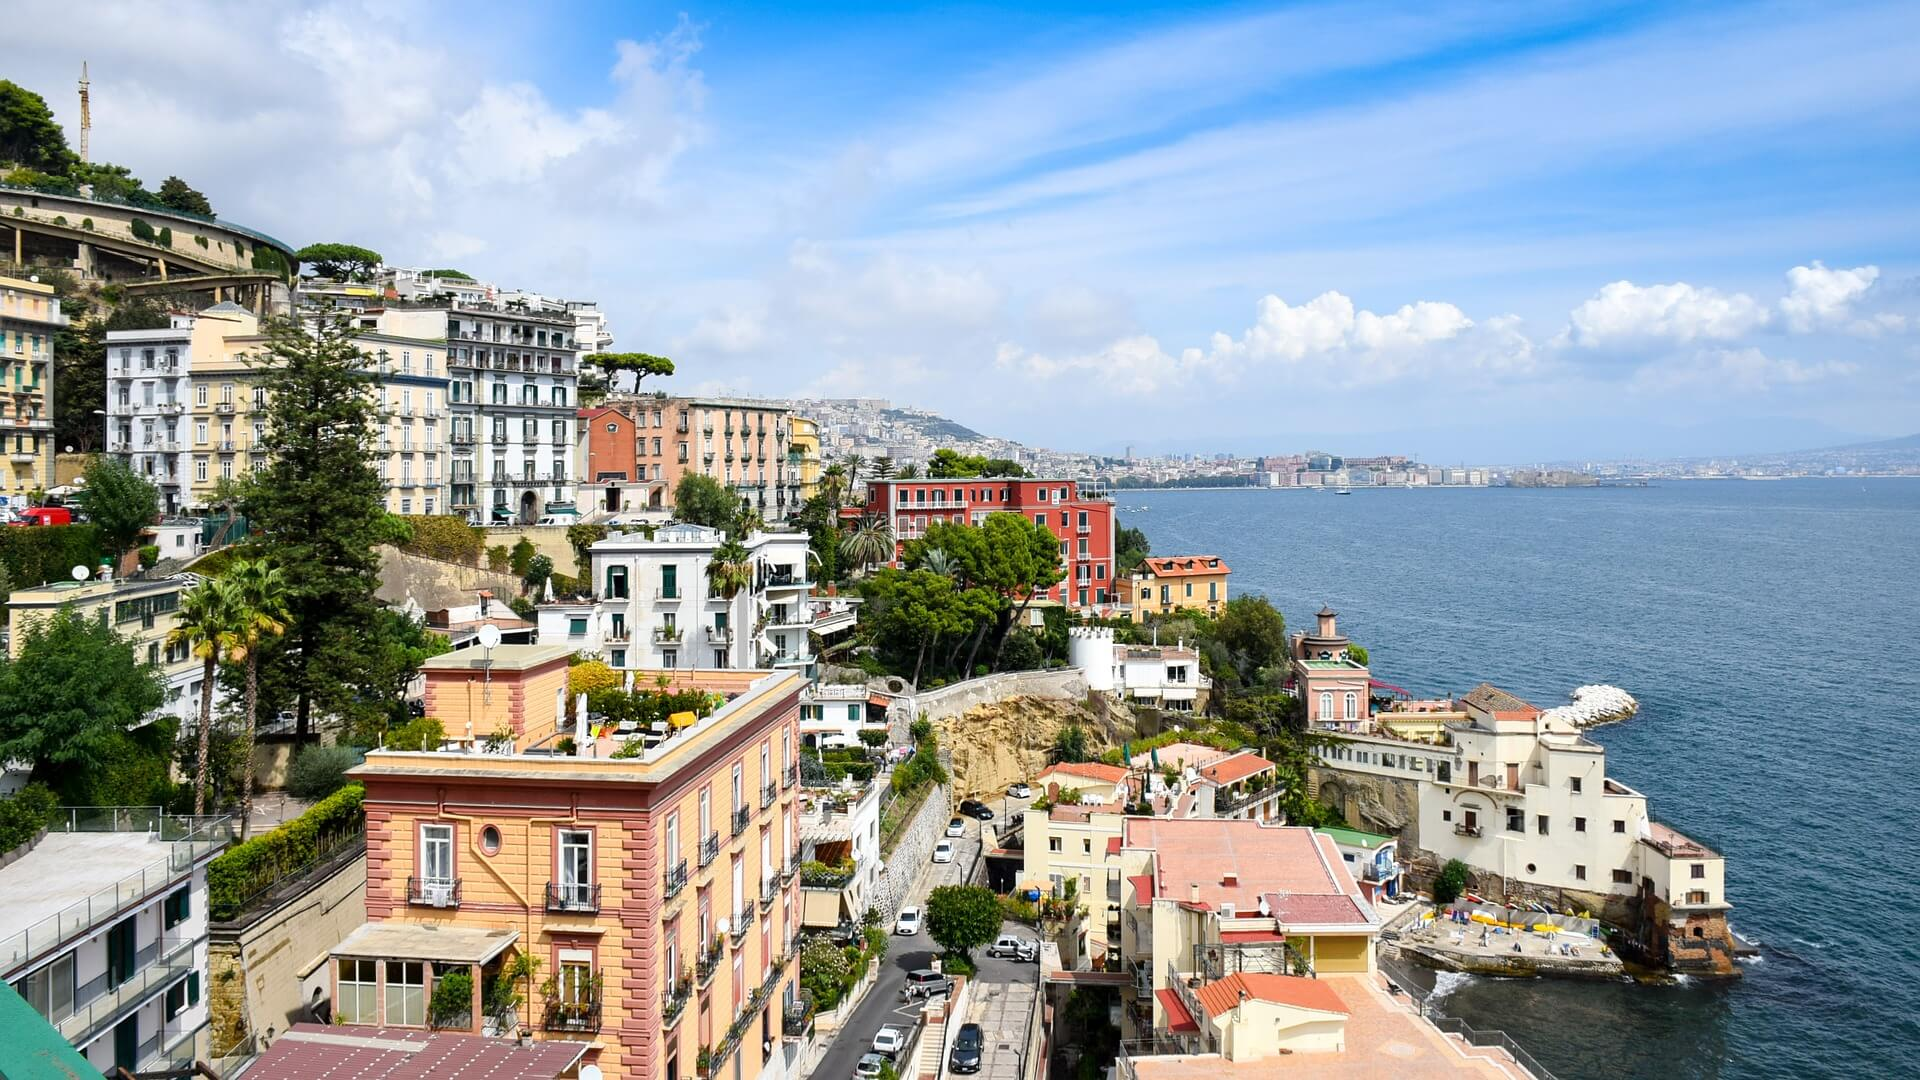 Magnificent Tuscany - Naples the pearl of Southern Italy